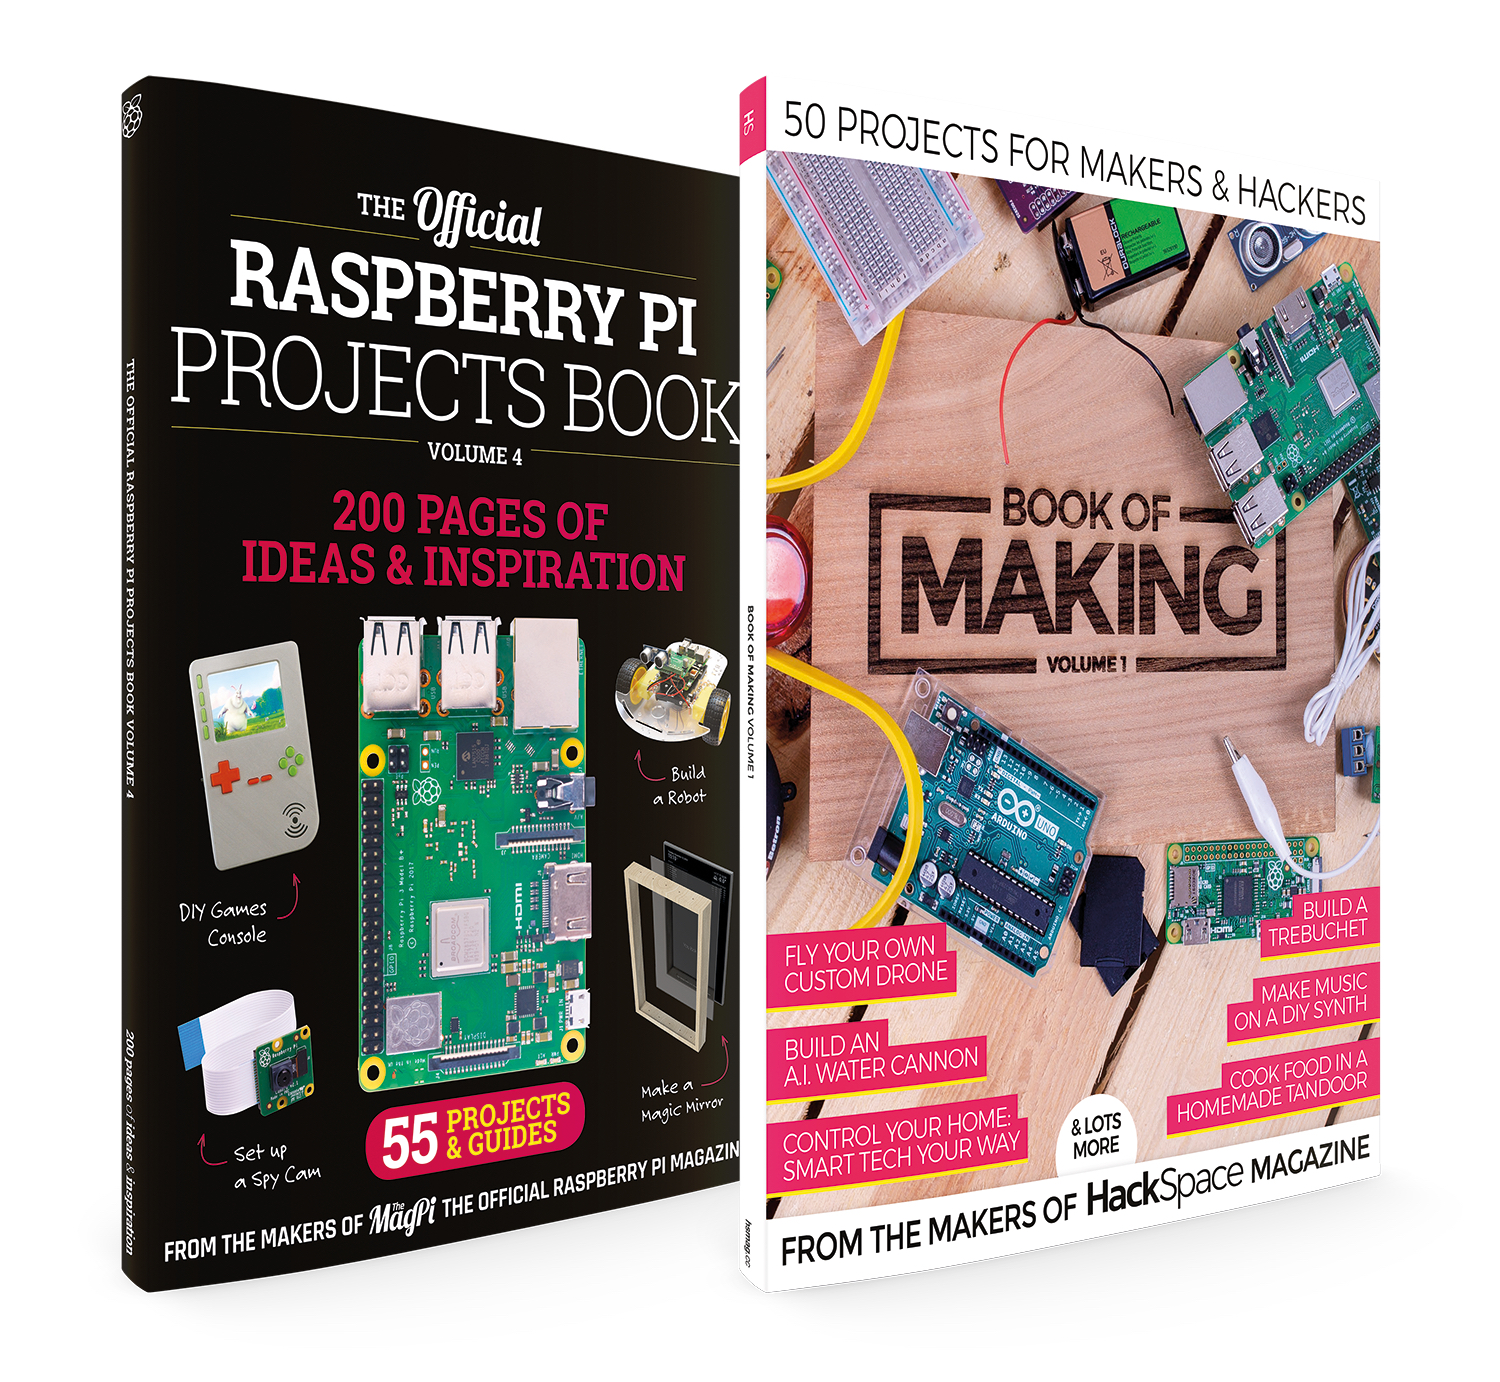 Brand-new books from The MagPi and HackSpace magazine